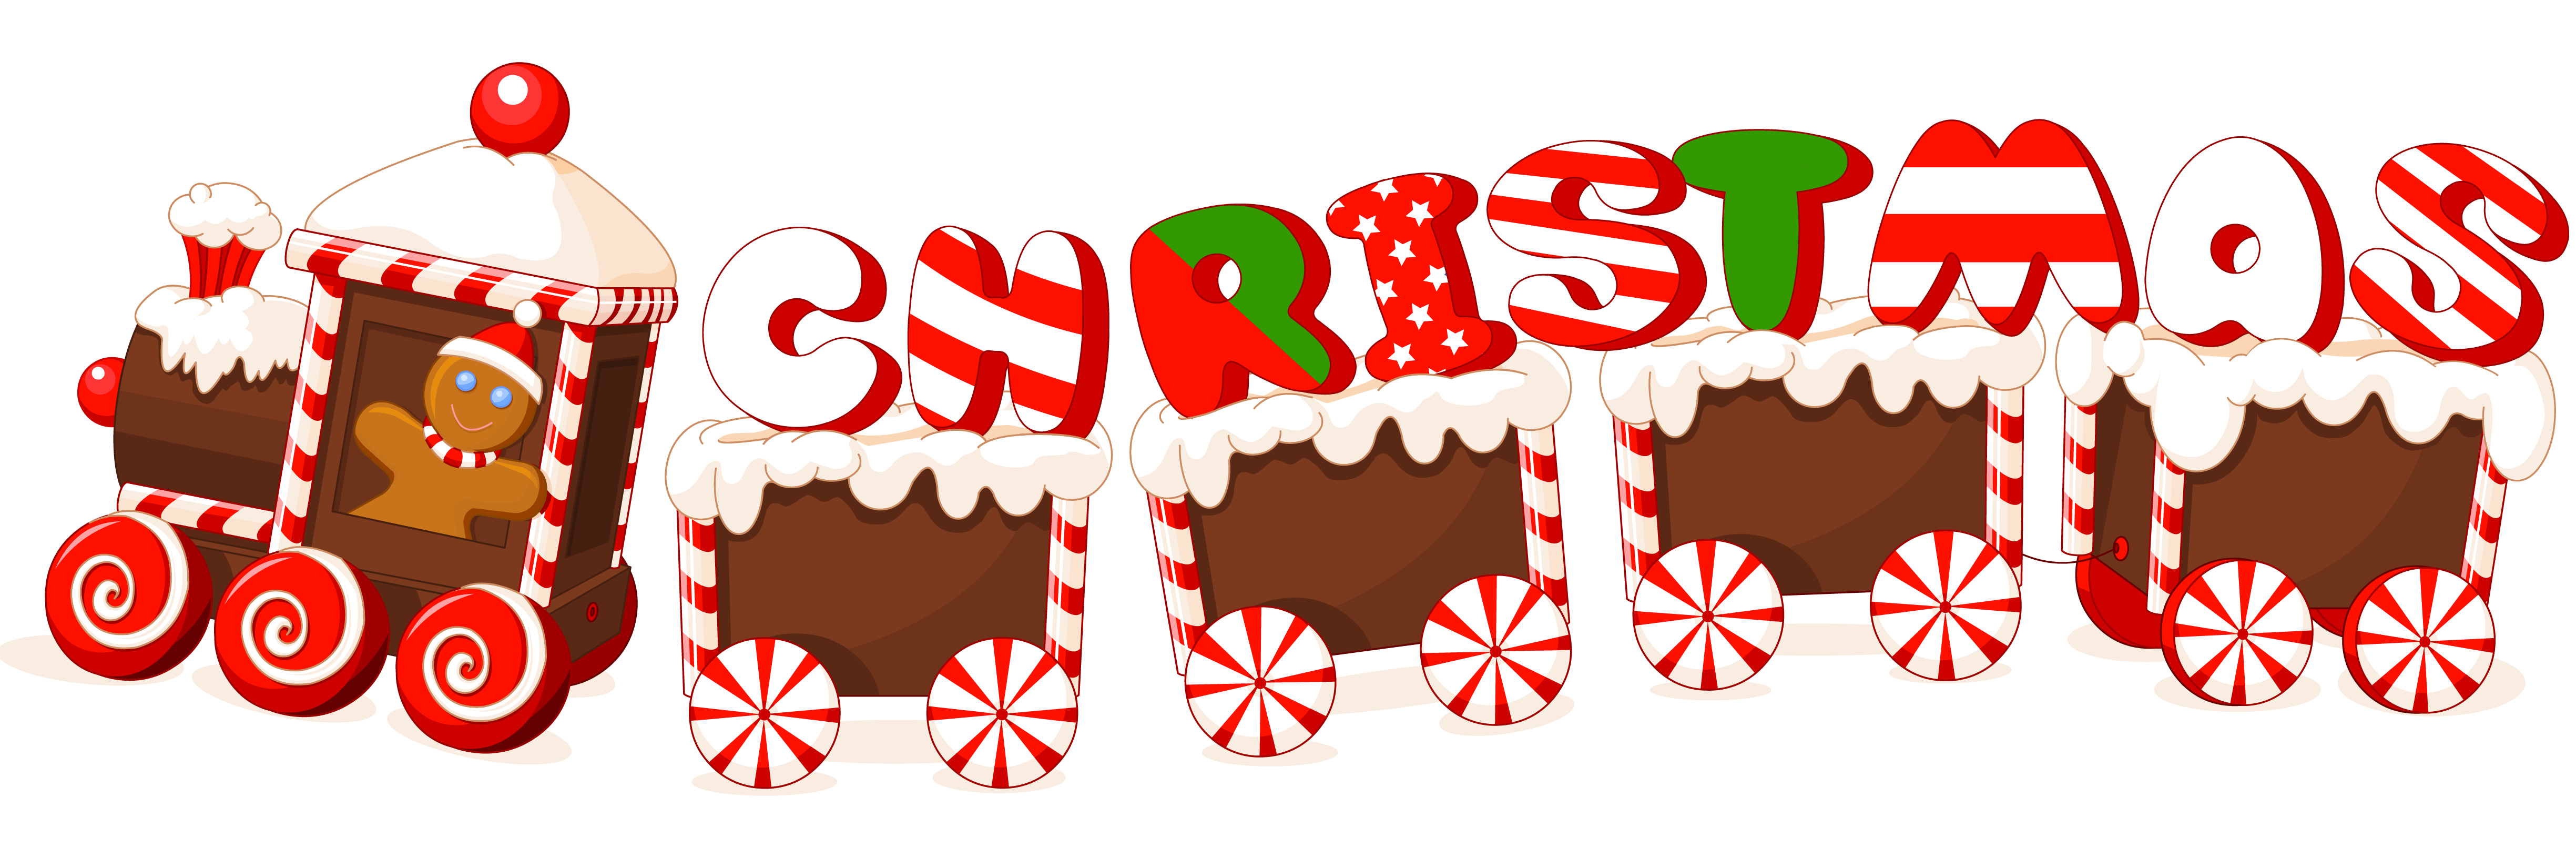 Free clipart merry christmas text vector royalty free Merry Christmas Banner Clipart – Merry Christmas And Happy New Year 2018 vector royalty free